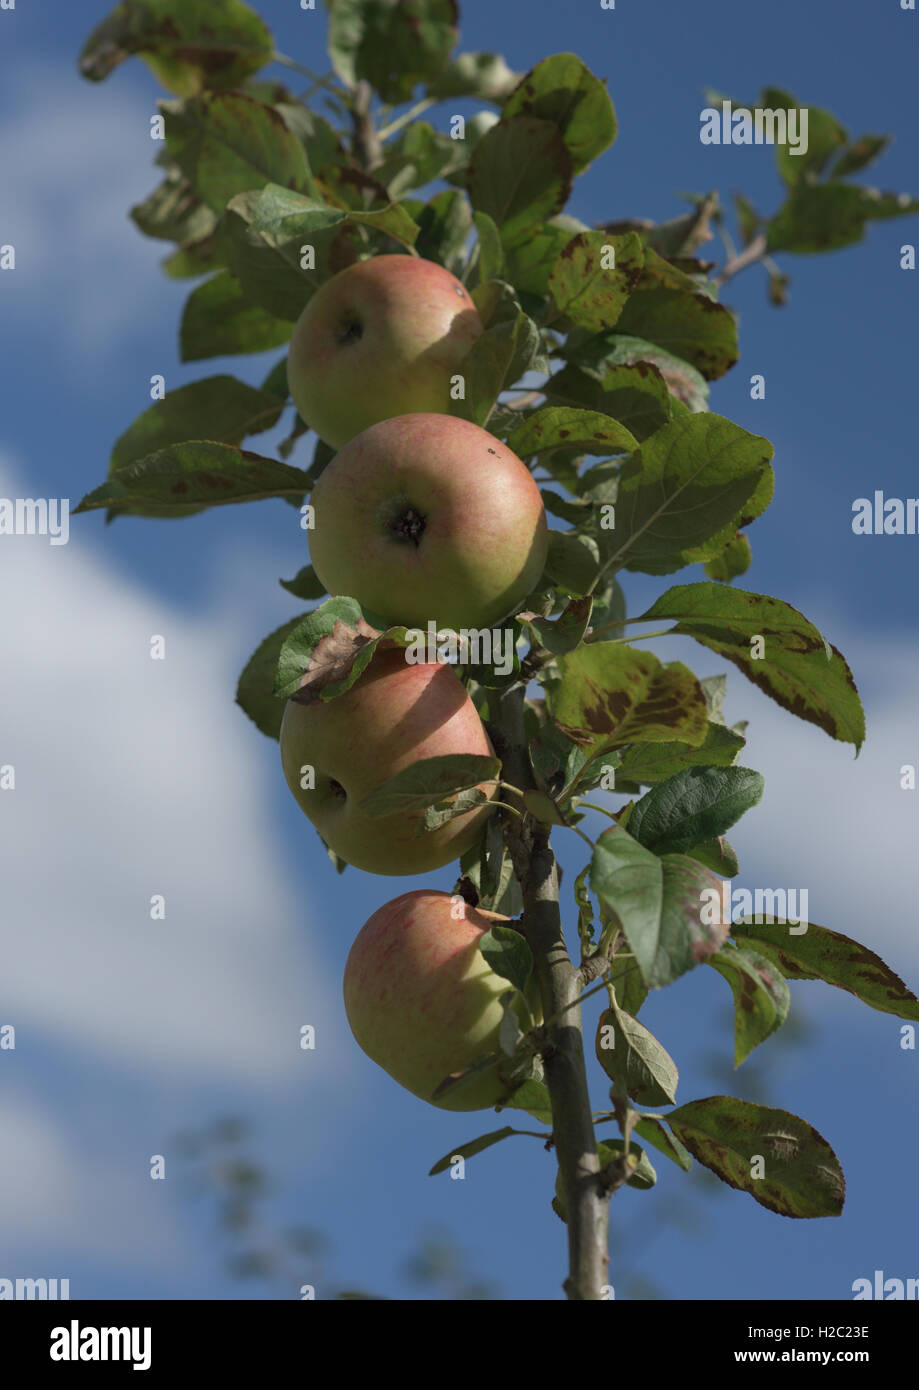 Four apples on branch of apple tree - Stock Image